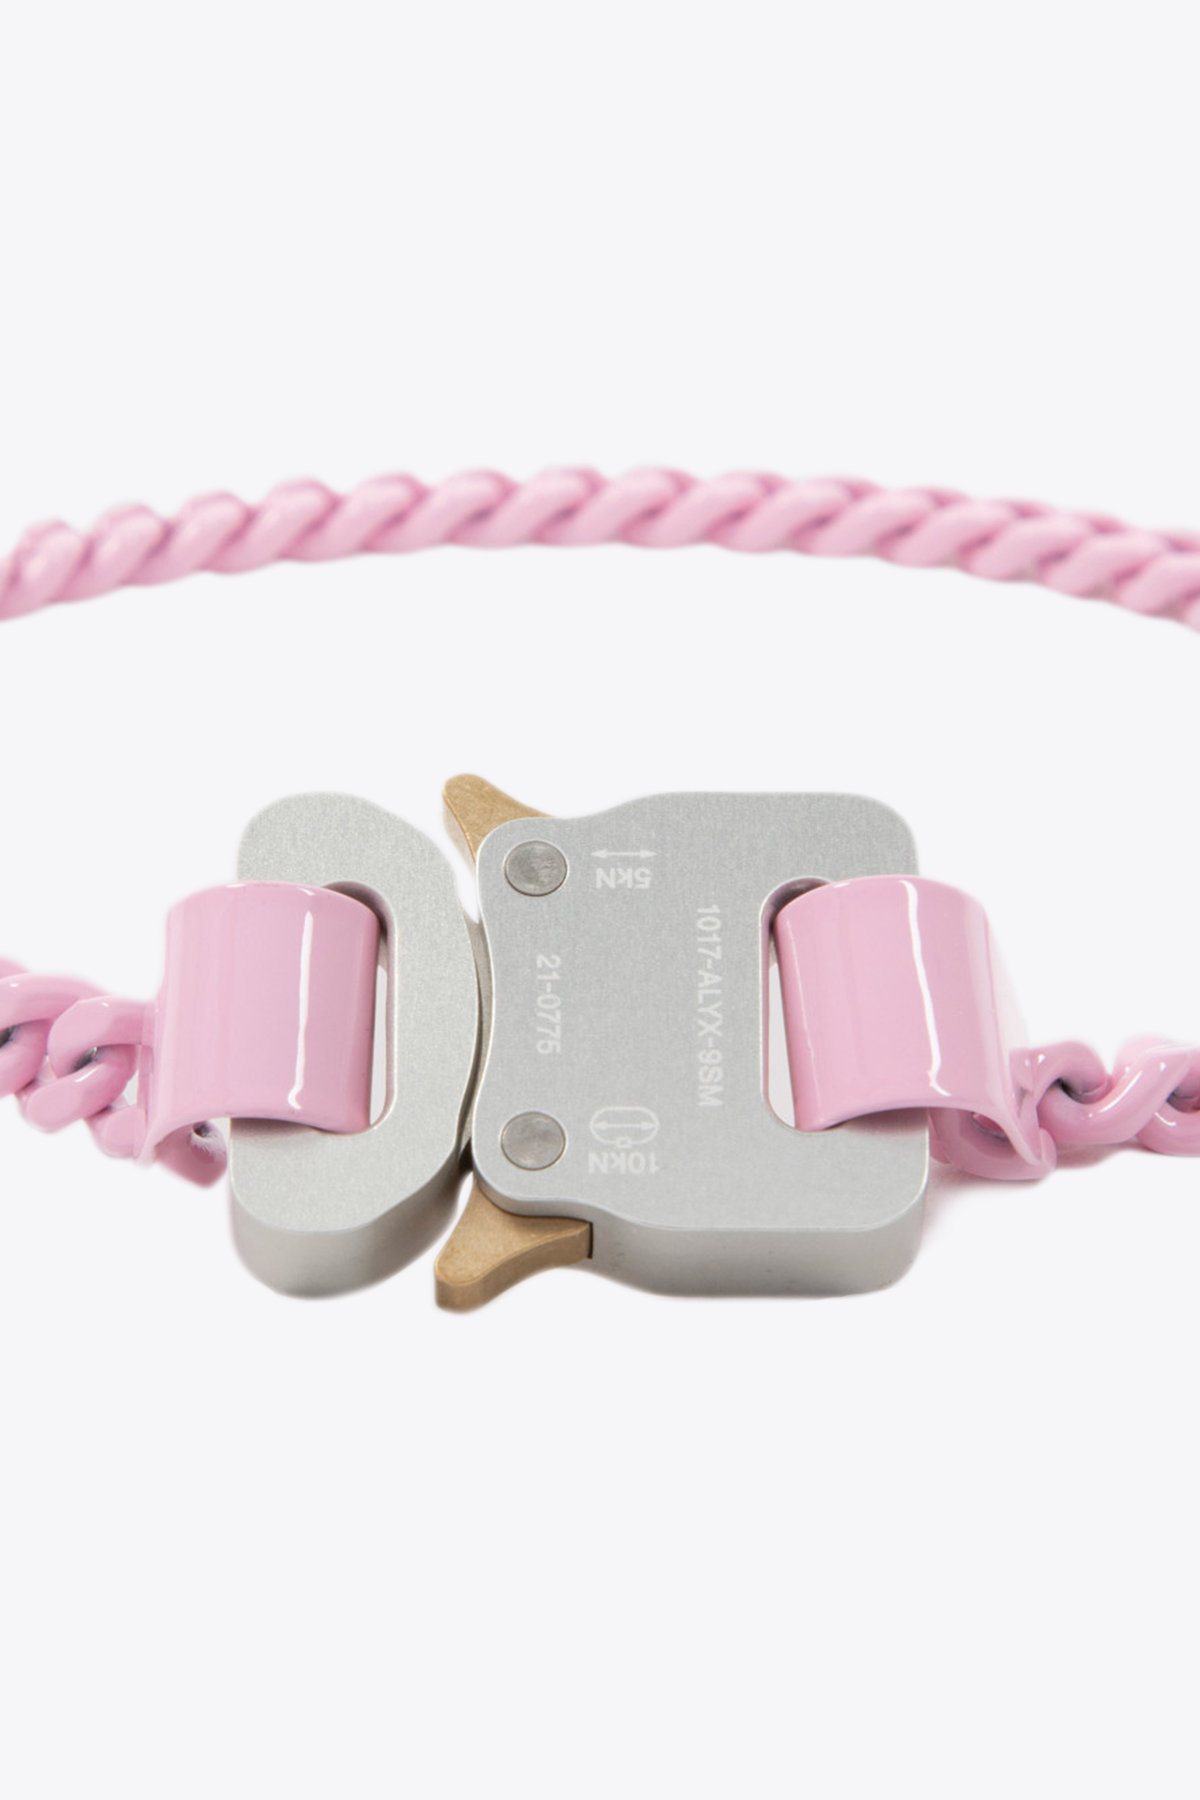 PINK CHAINLINK BUCKLE NECKLACE 1017 ALYX 9SM   35   AAUJW0097OT01 PINK CHAINLINK BUCKLE NECK06